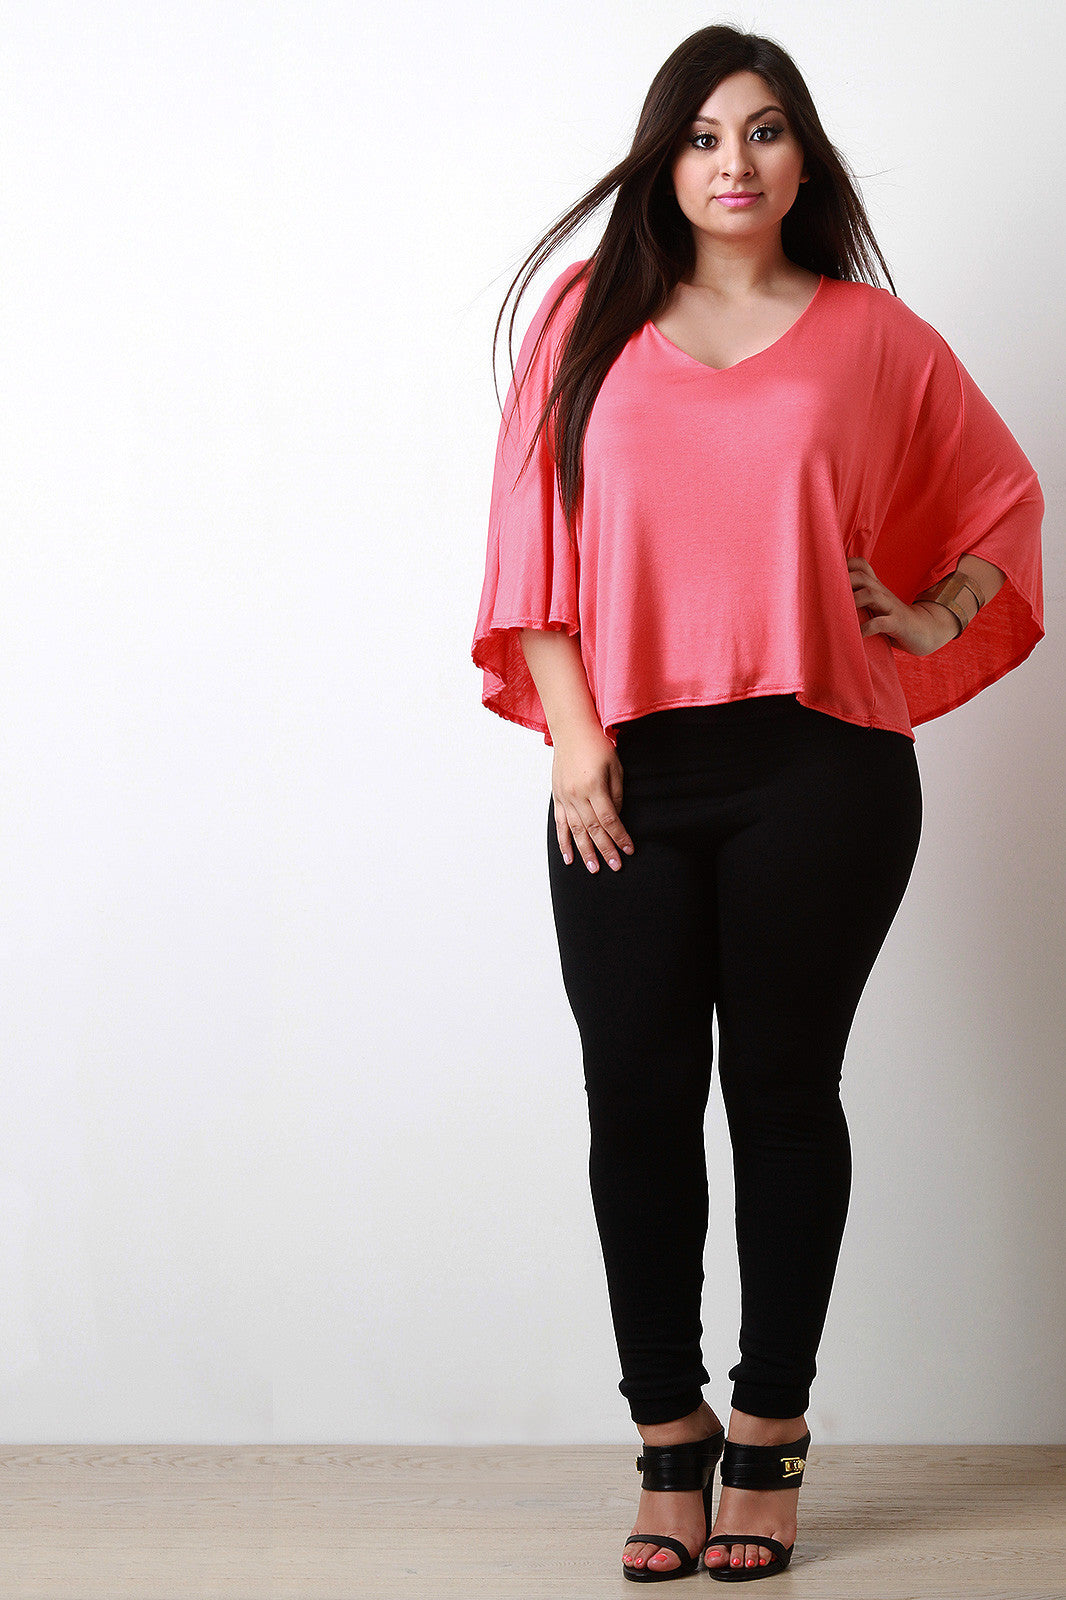 Jersey Knit V-Neck Dolman Sleeve Top - Thick 'N' Curvy Shop - 3